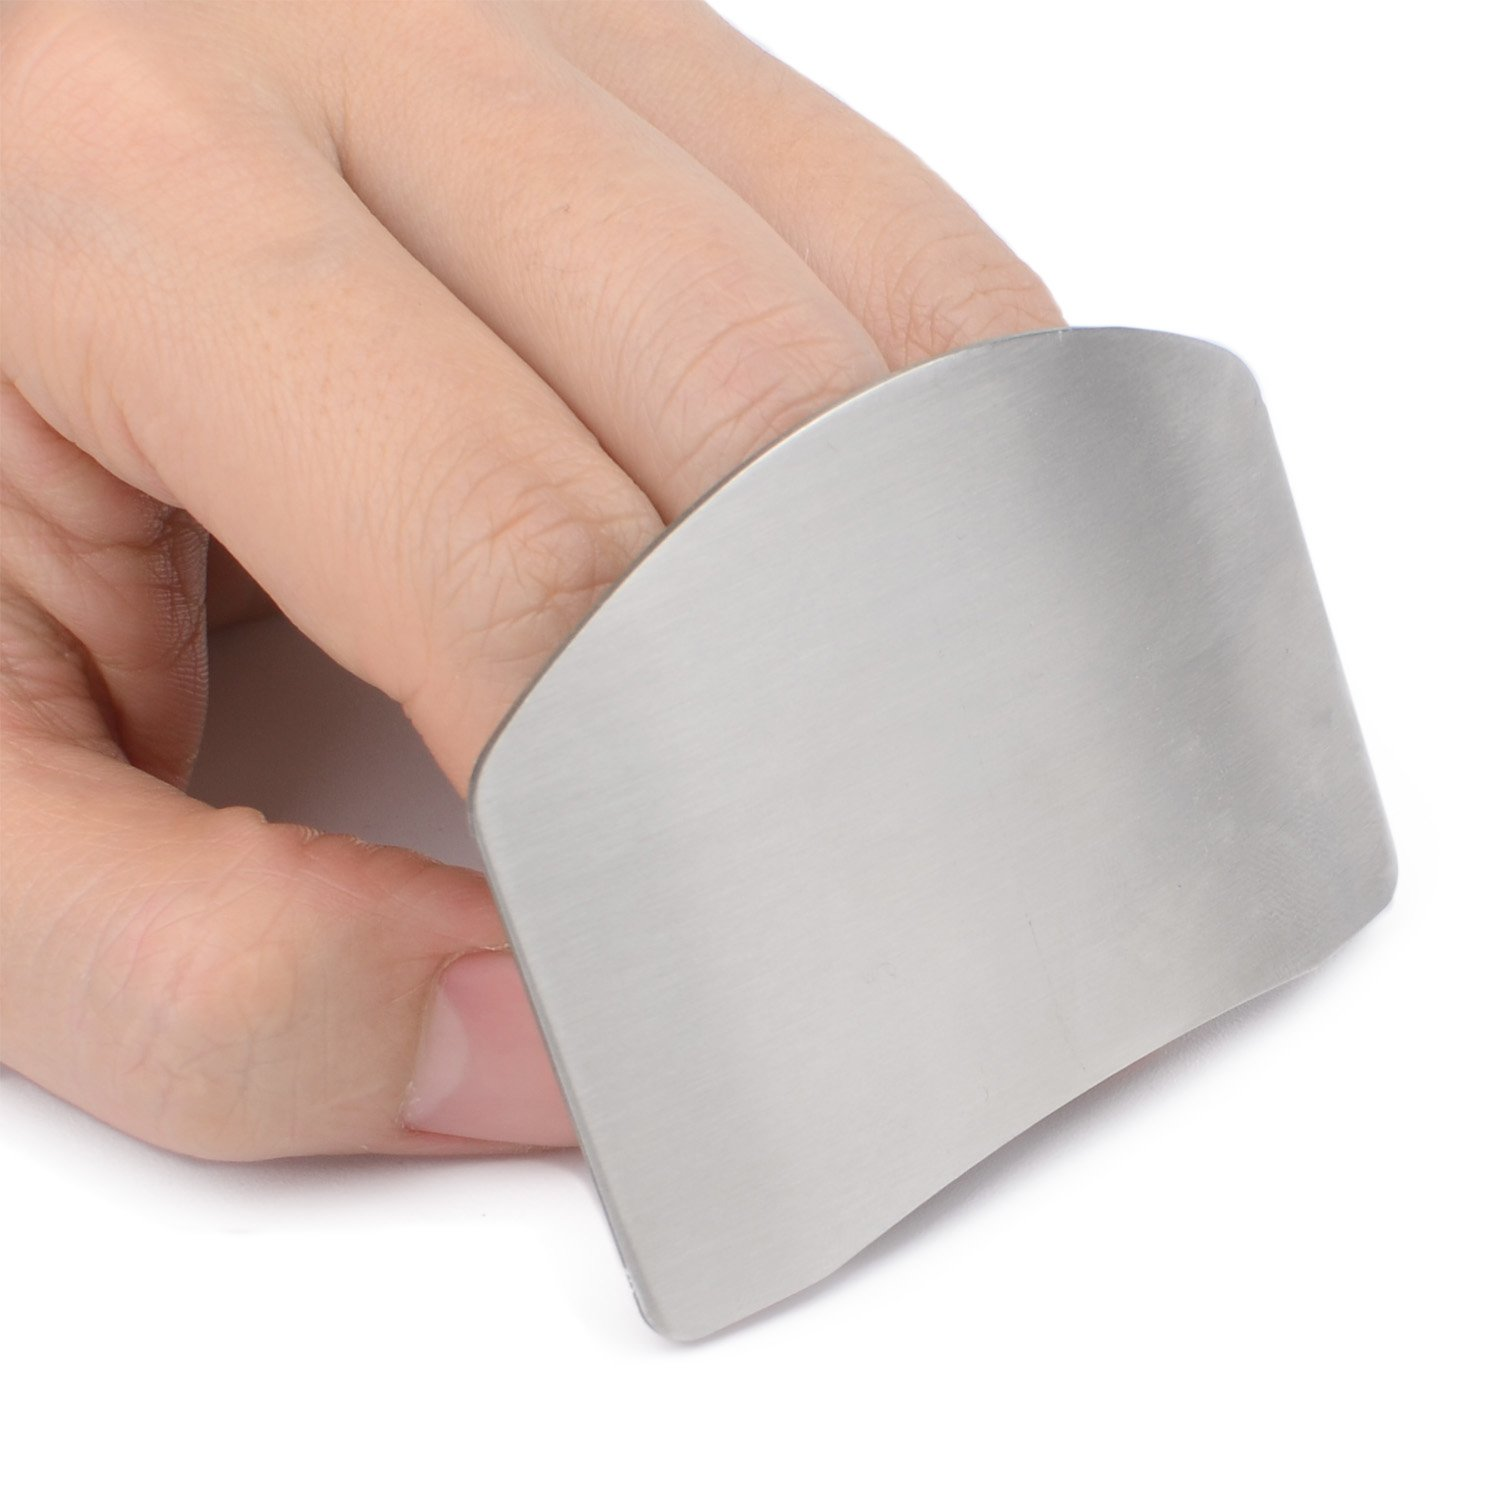 Zelta Finger Guard Digiclass Slicing Cutting Protector 2.6 Inches Stainless Steel Finger Protector Cutting by Zelta (Image #1)